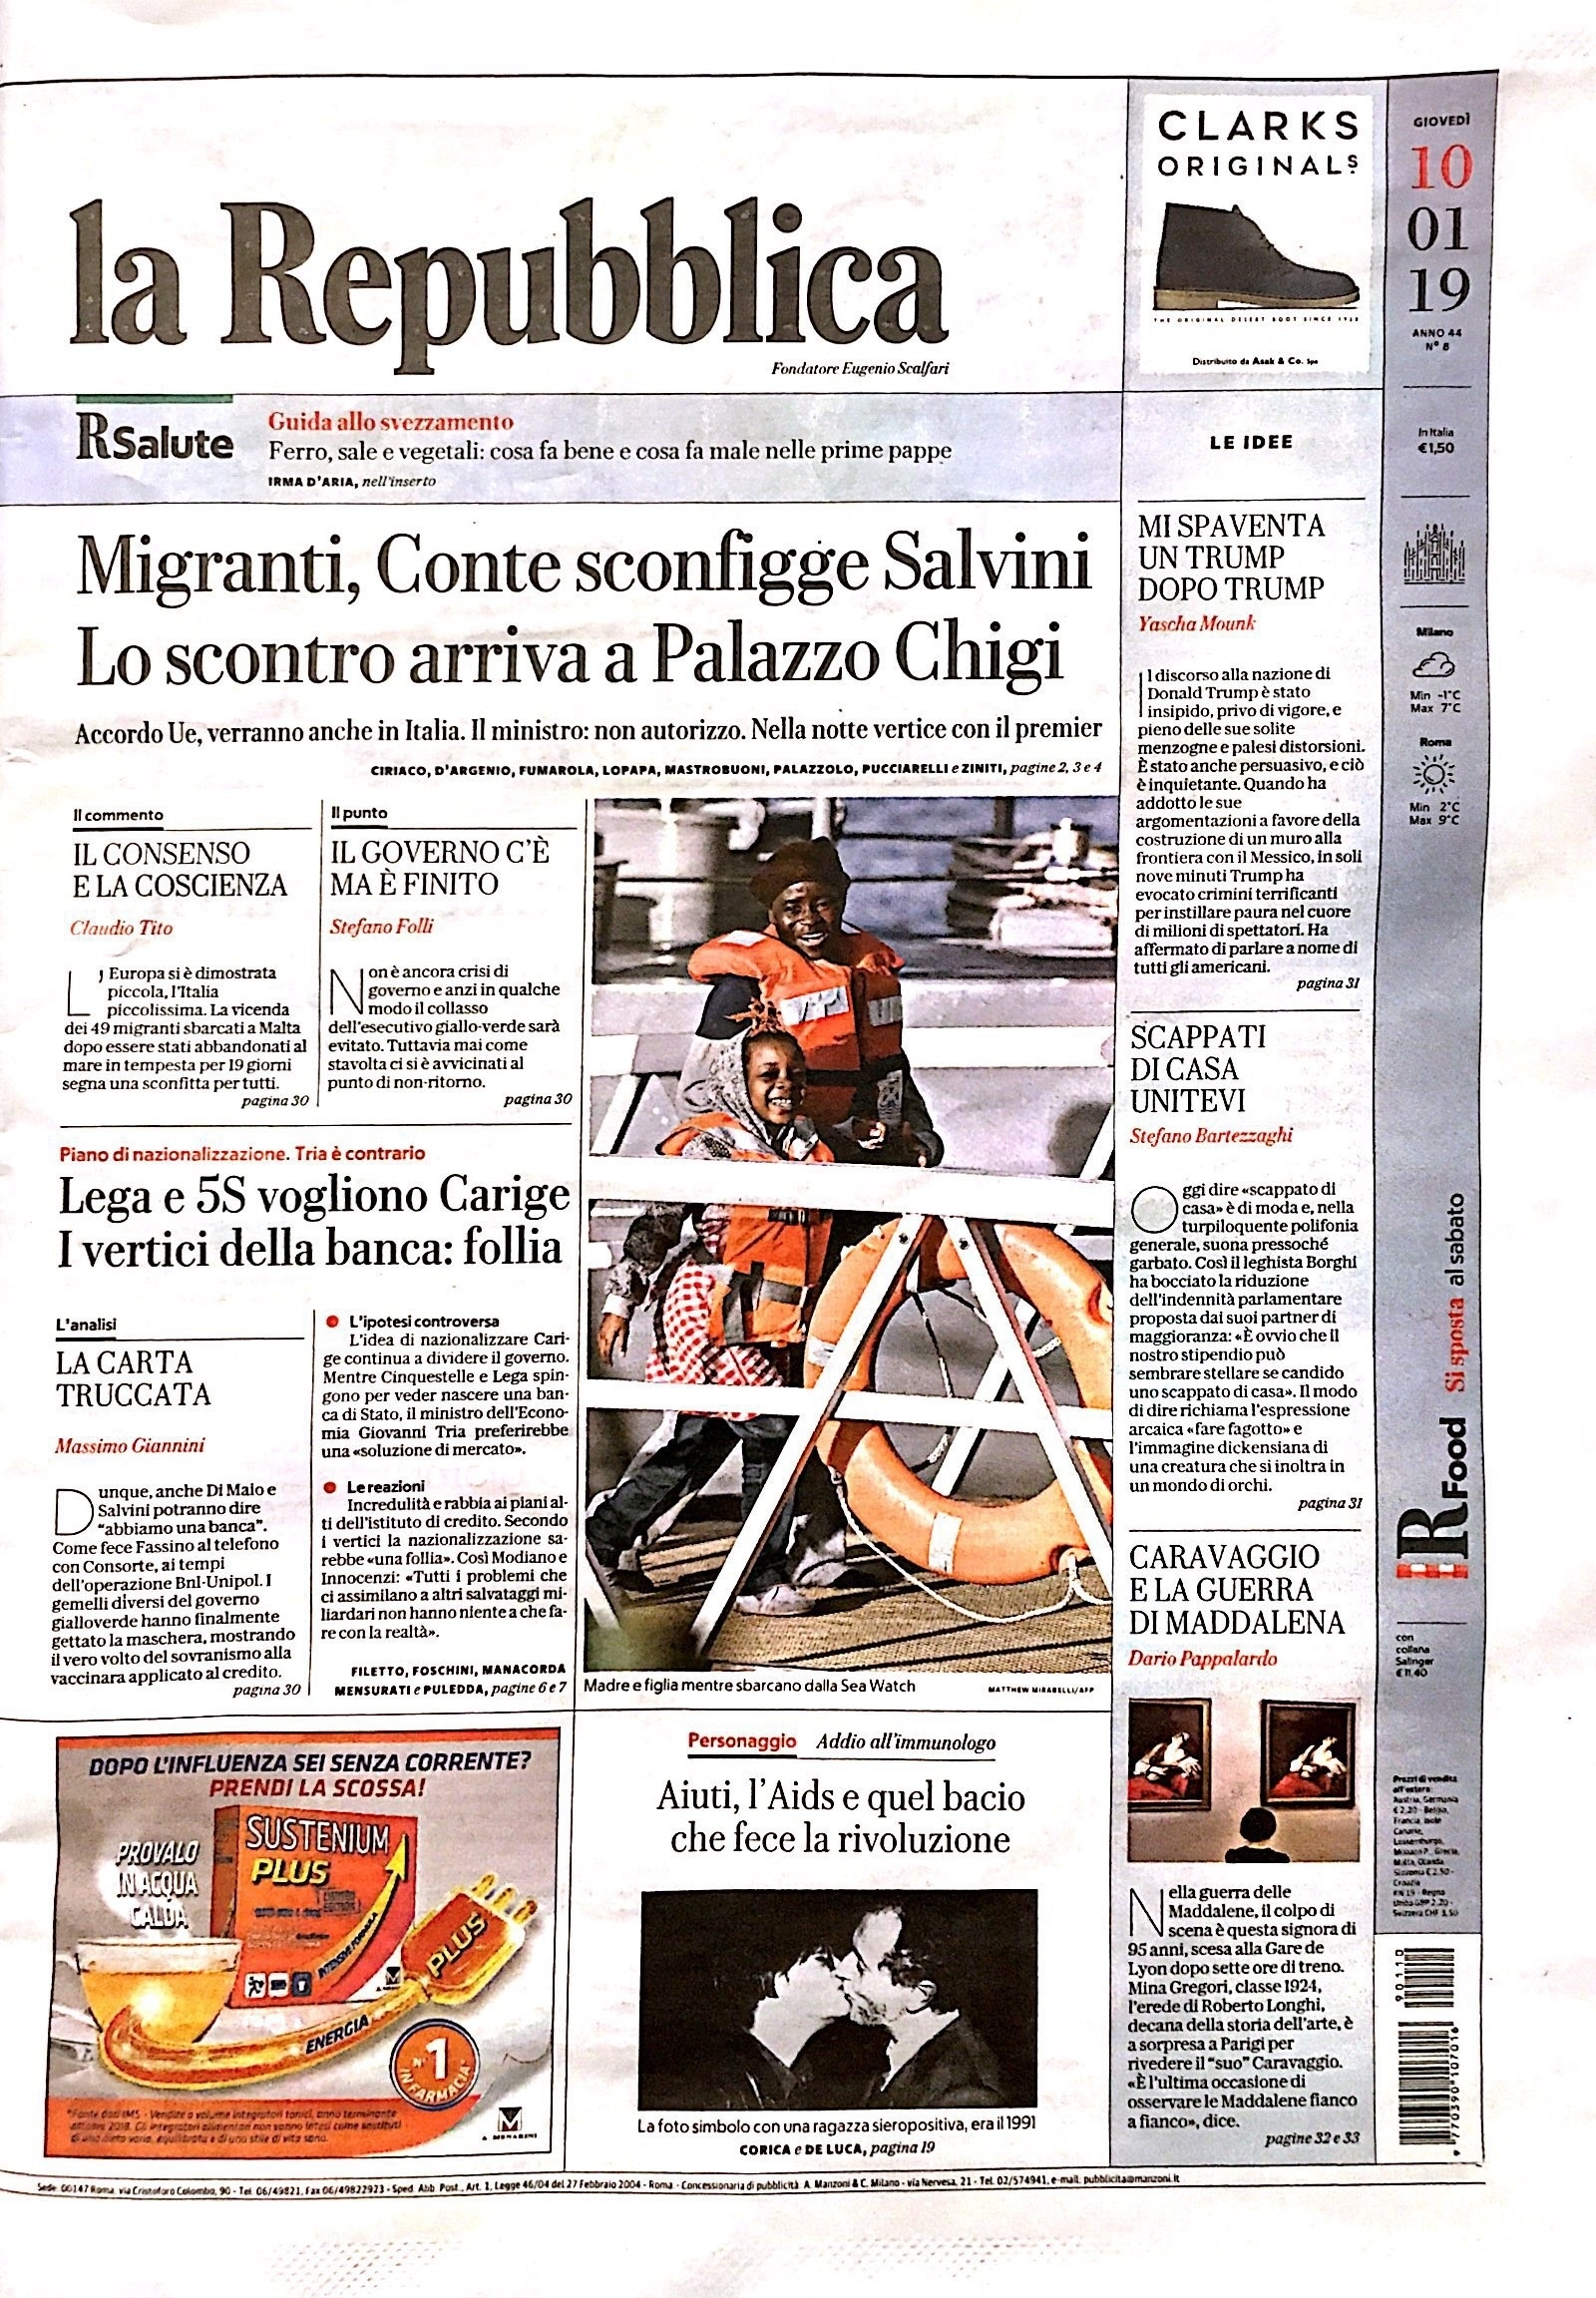 La Repubblica January 2019